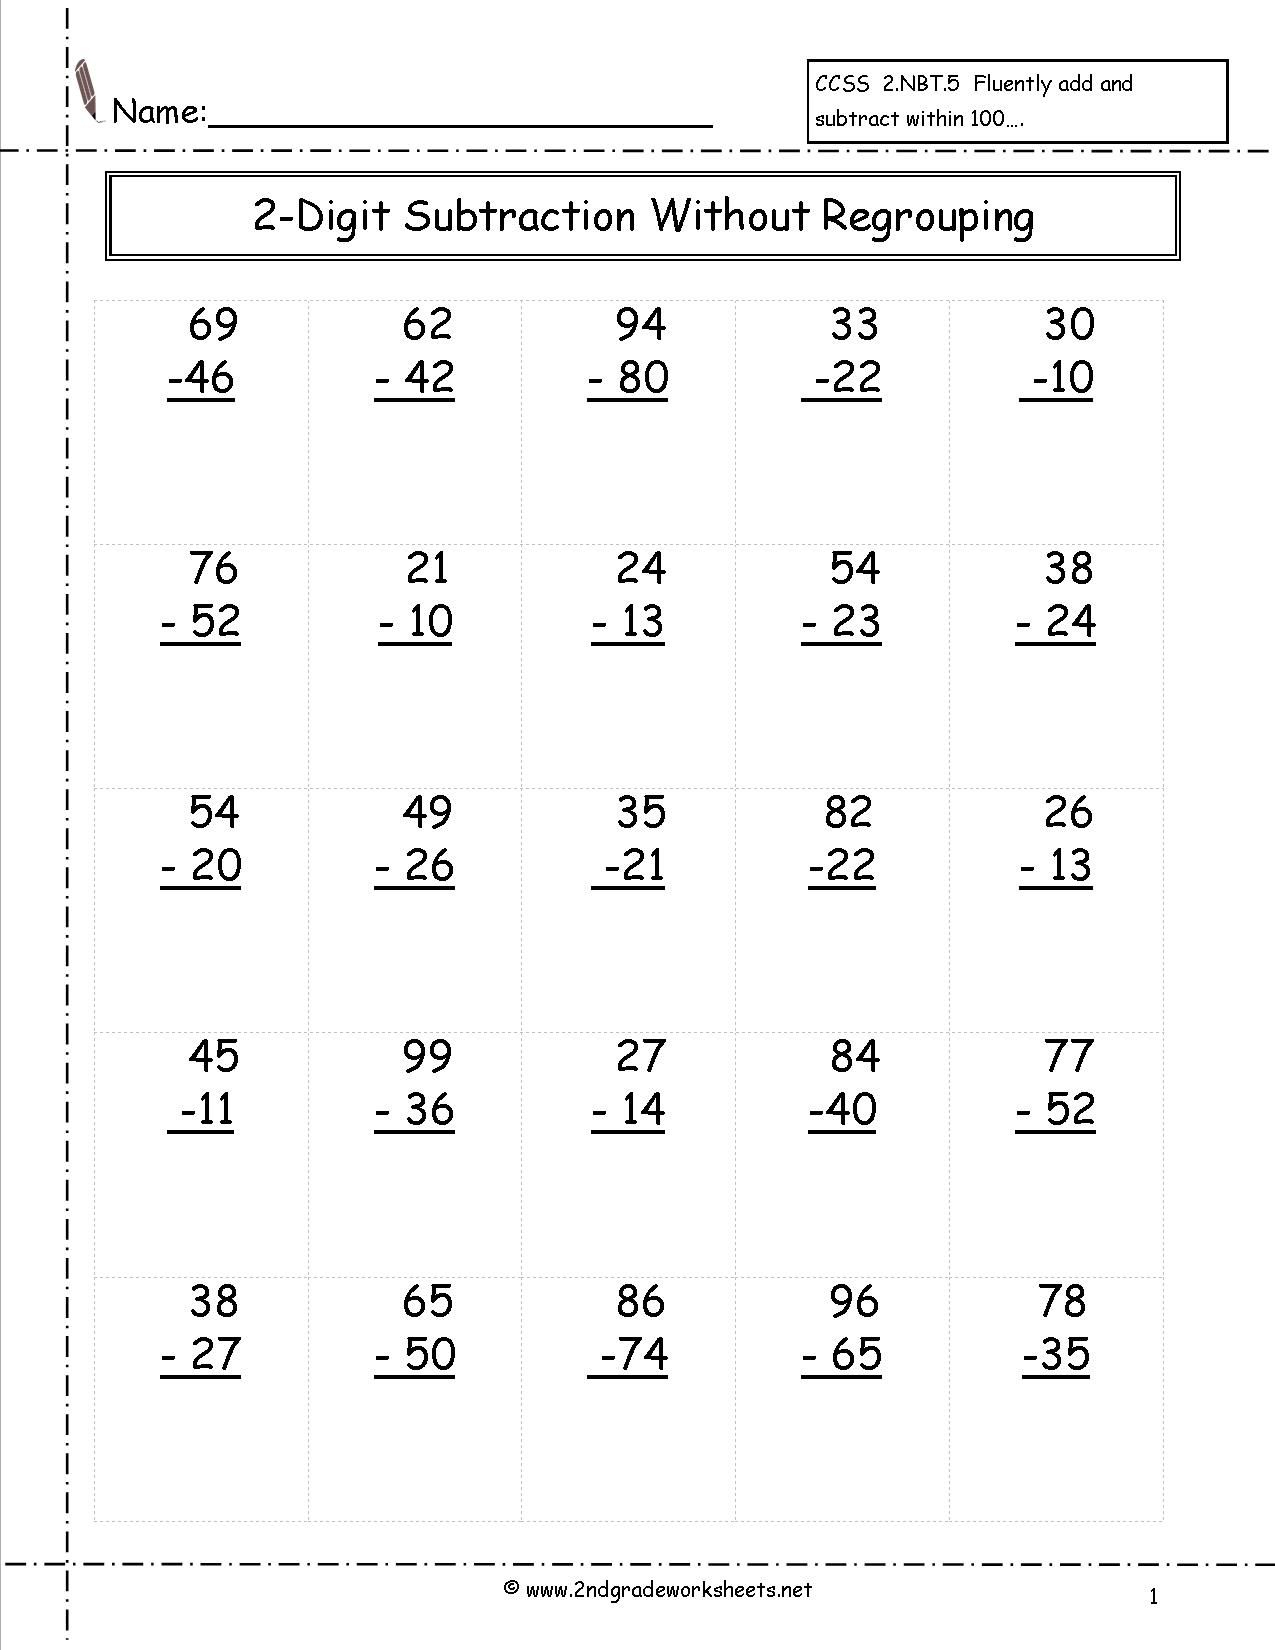 Two Digit Subtraction Without Regrouping Worksheet | 2Nd Grade - Free Printable Subtraction Worksheets For 2Nd Grade